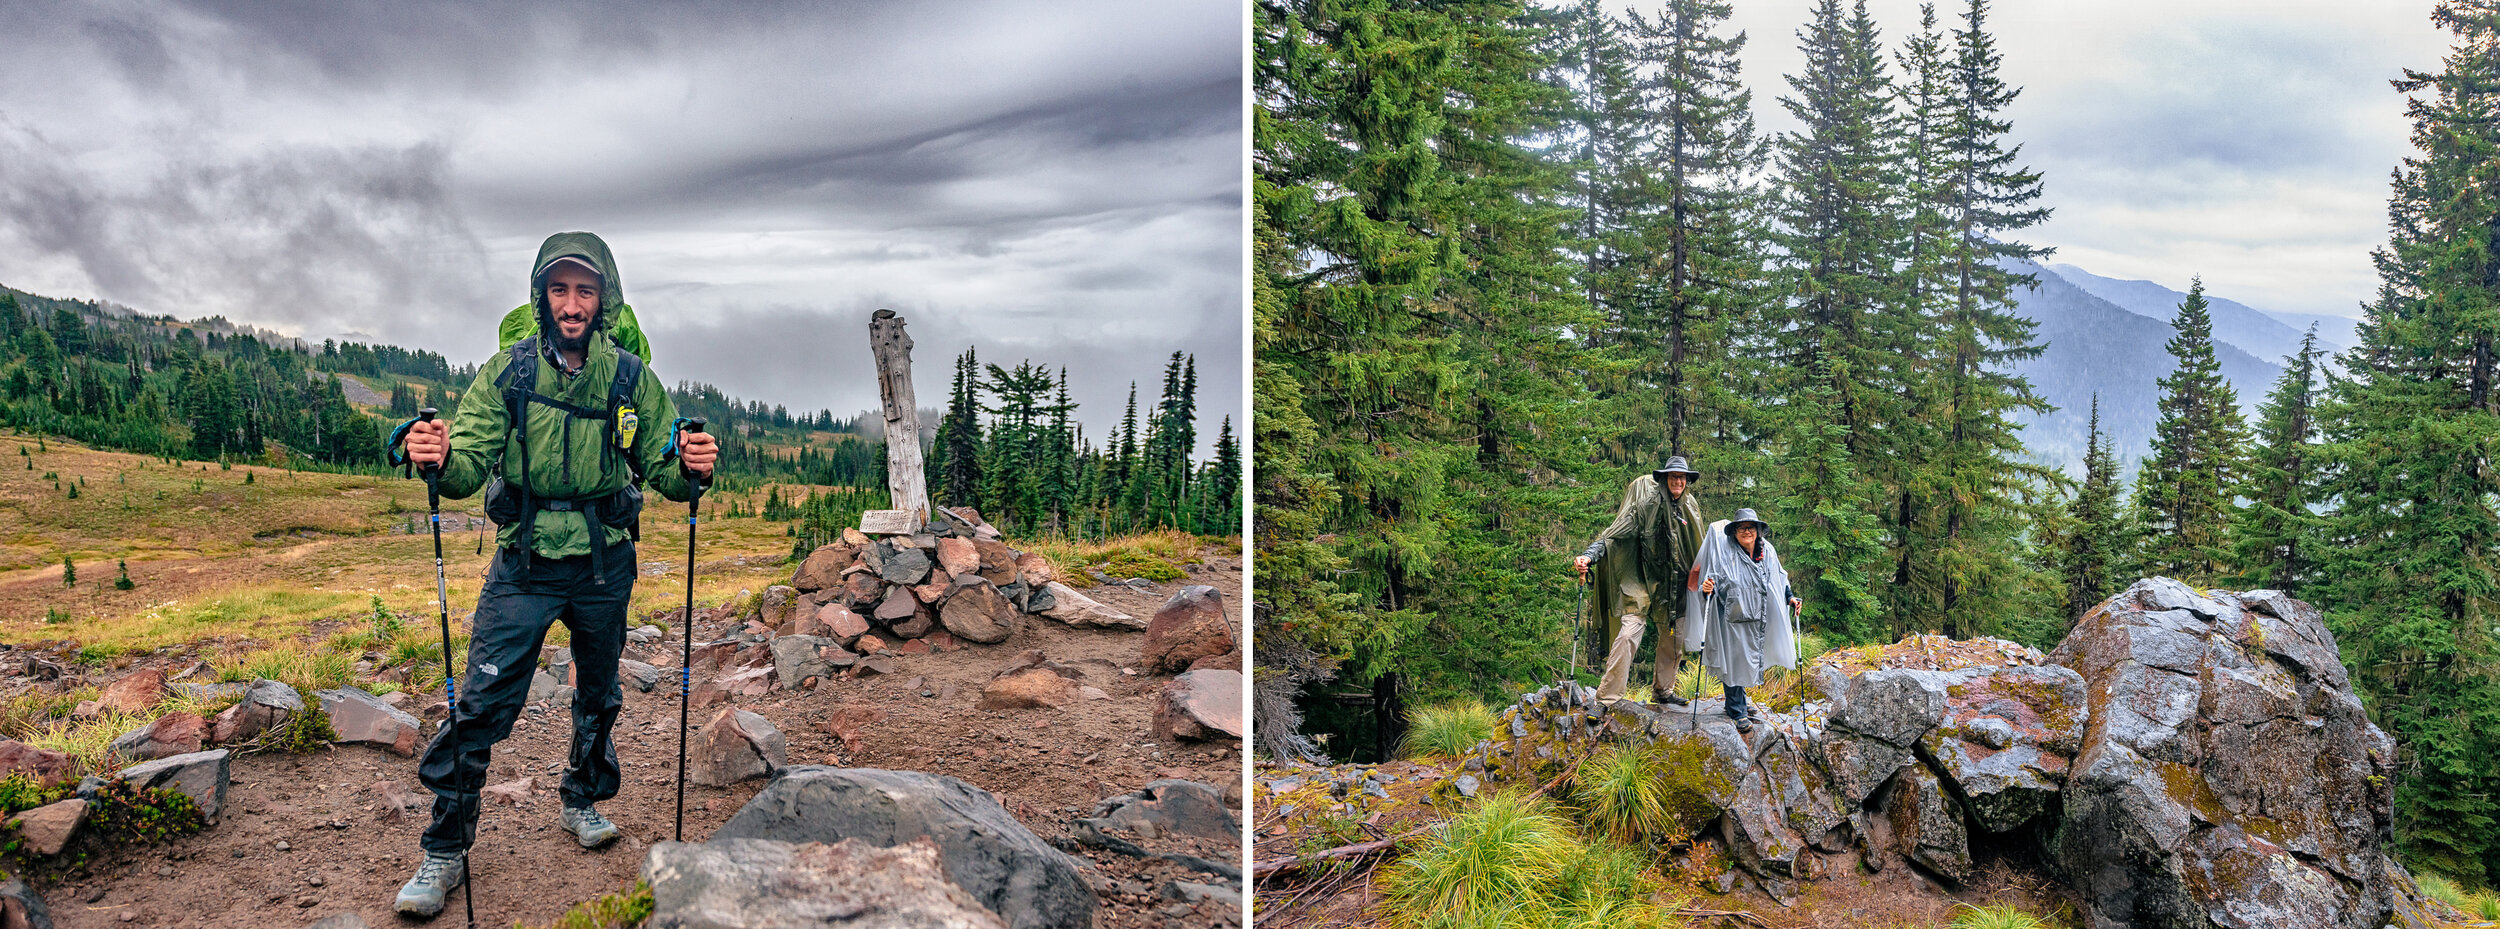 """Left: I met """"Tank"""" who has now hiked the entirety of the Pacific Crest Trail. Right: I met up with Russell and Mafer, who were the 2 others still left from our group, and we hiked back to the parking lot together."""